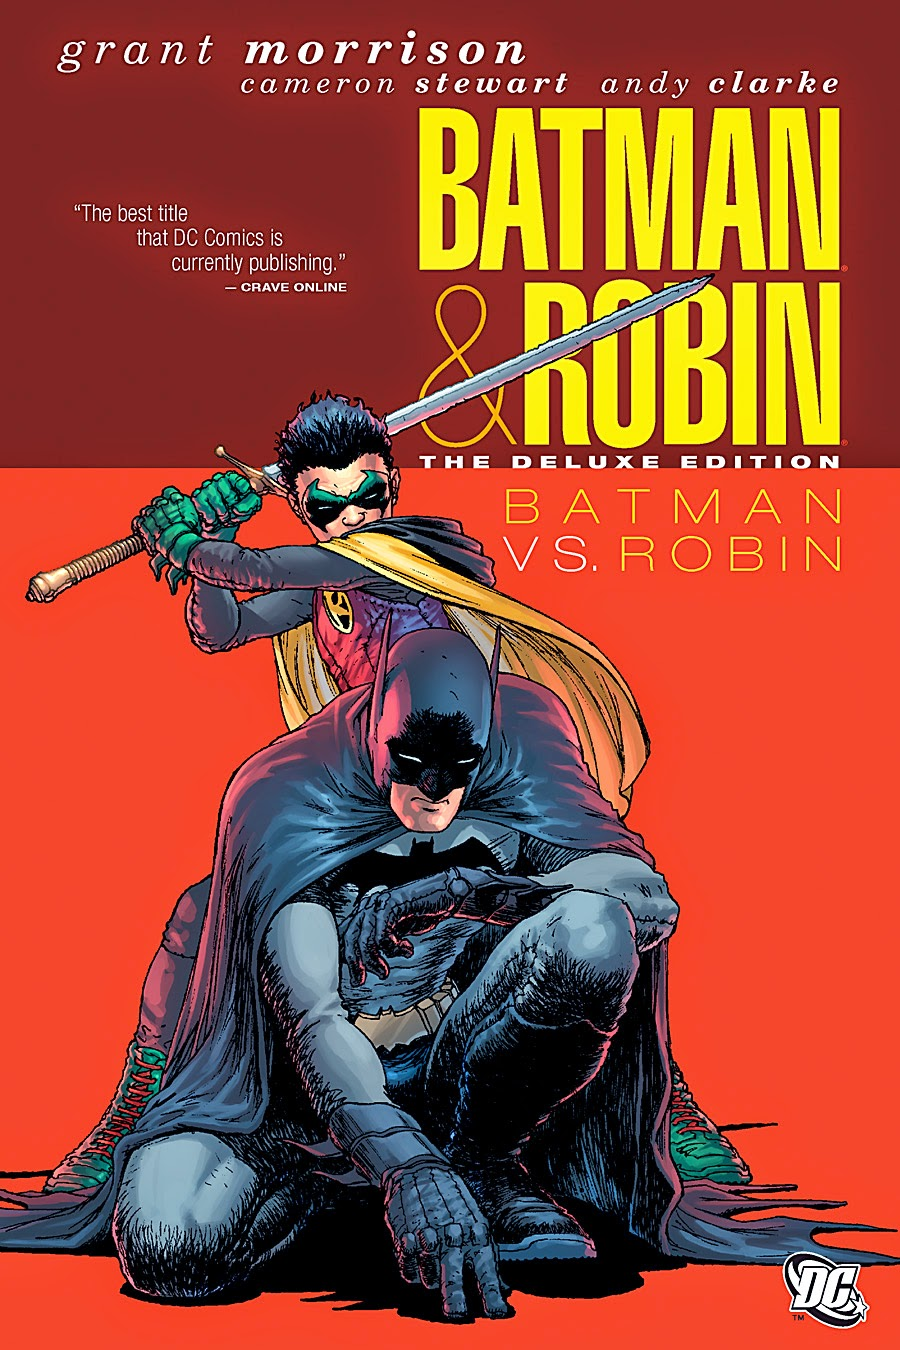 DC Animated Batman vs Robin film